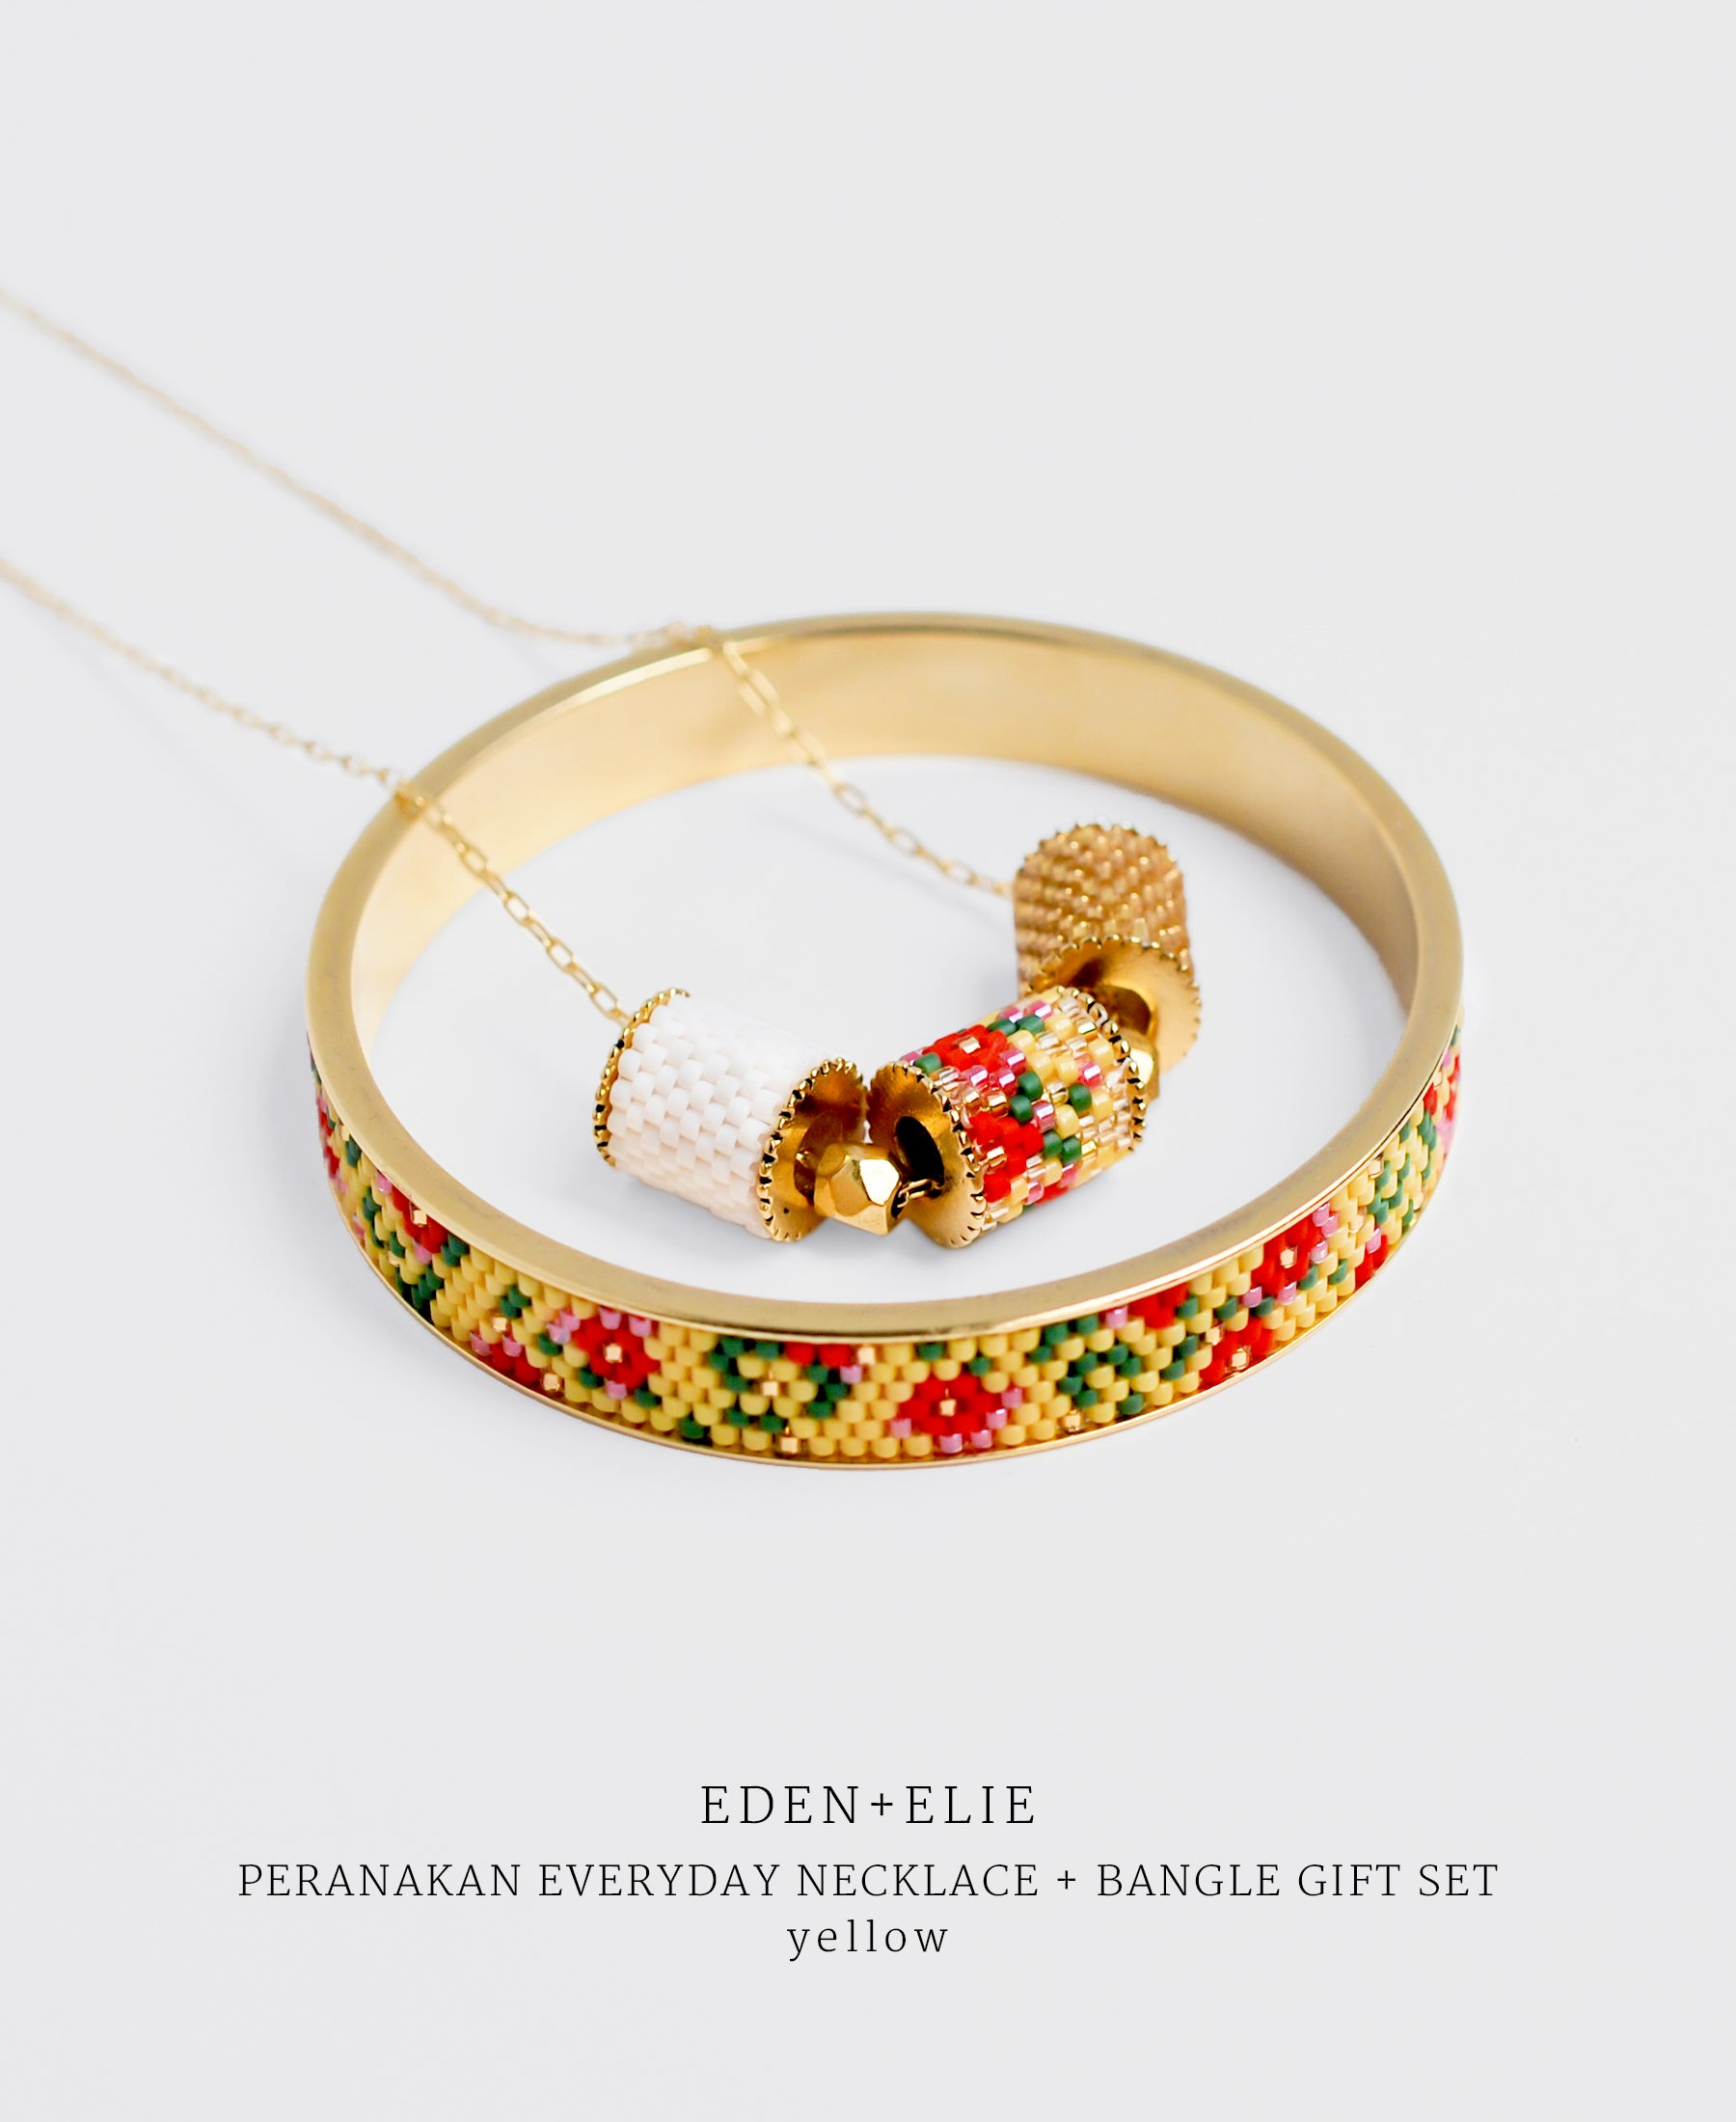 EDEN + ELIE Modern Peranakan adjustable length necklace + bangle gift set - yellow